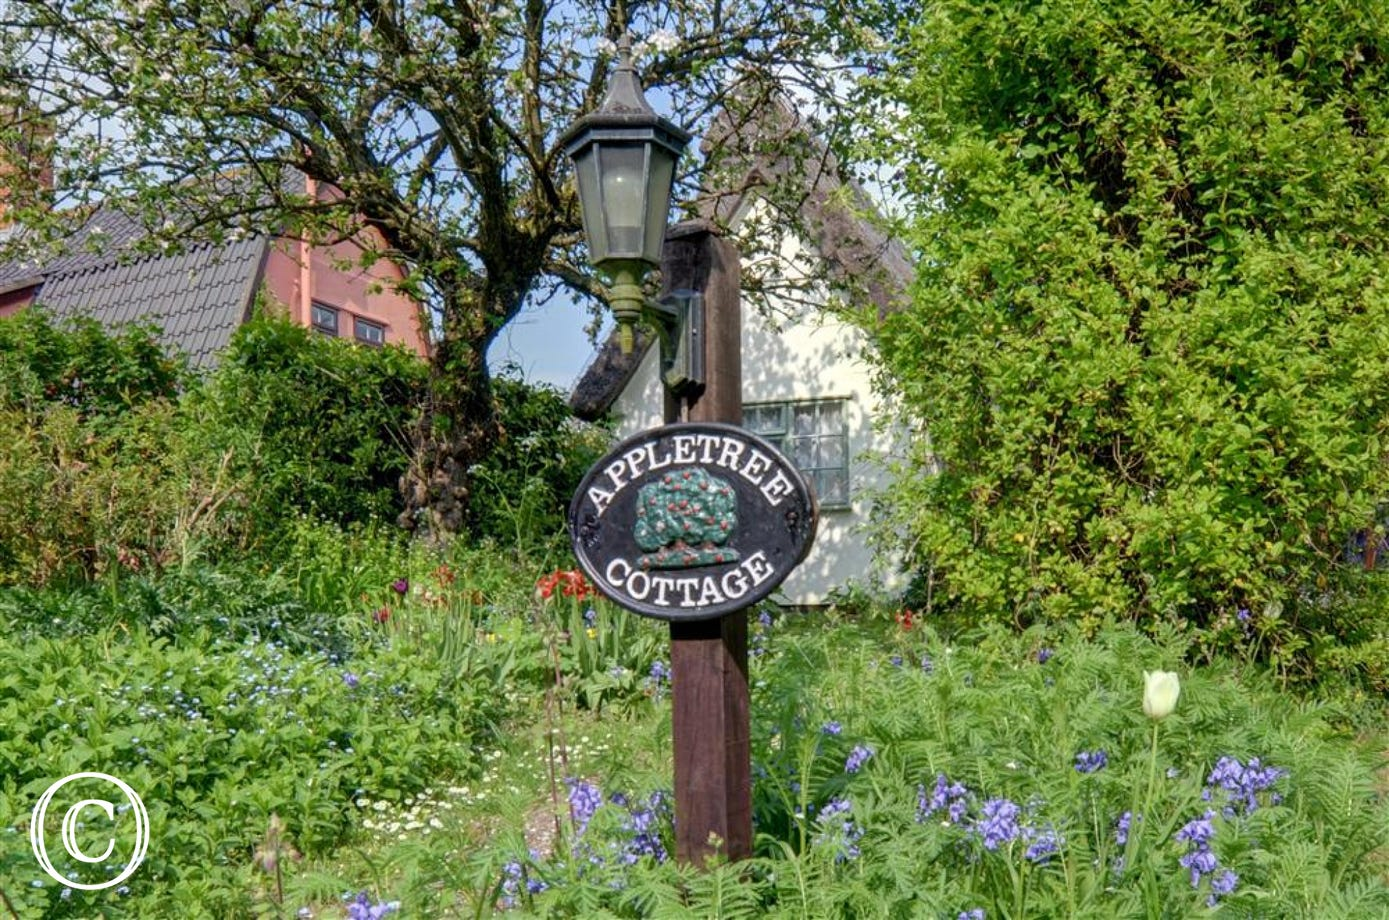 This pretty name plate is situated within the car parking area and guides to way to the property.